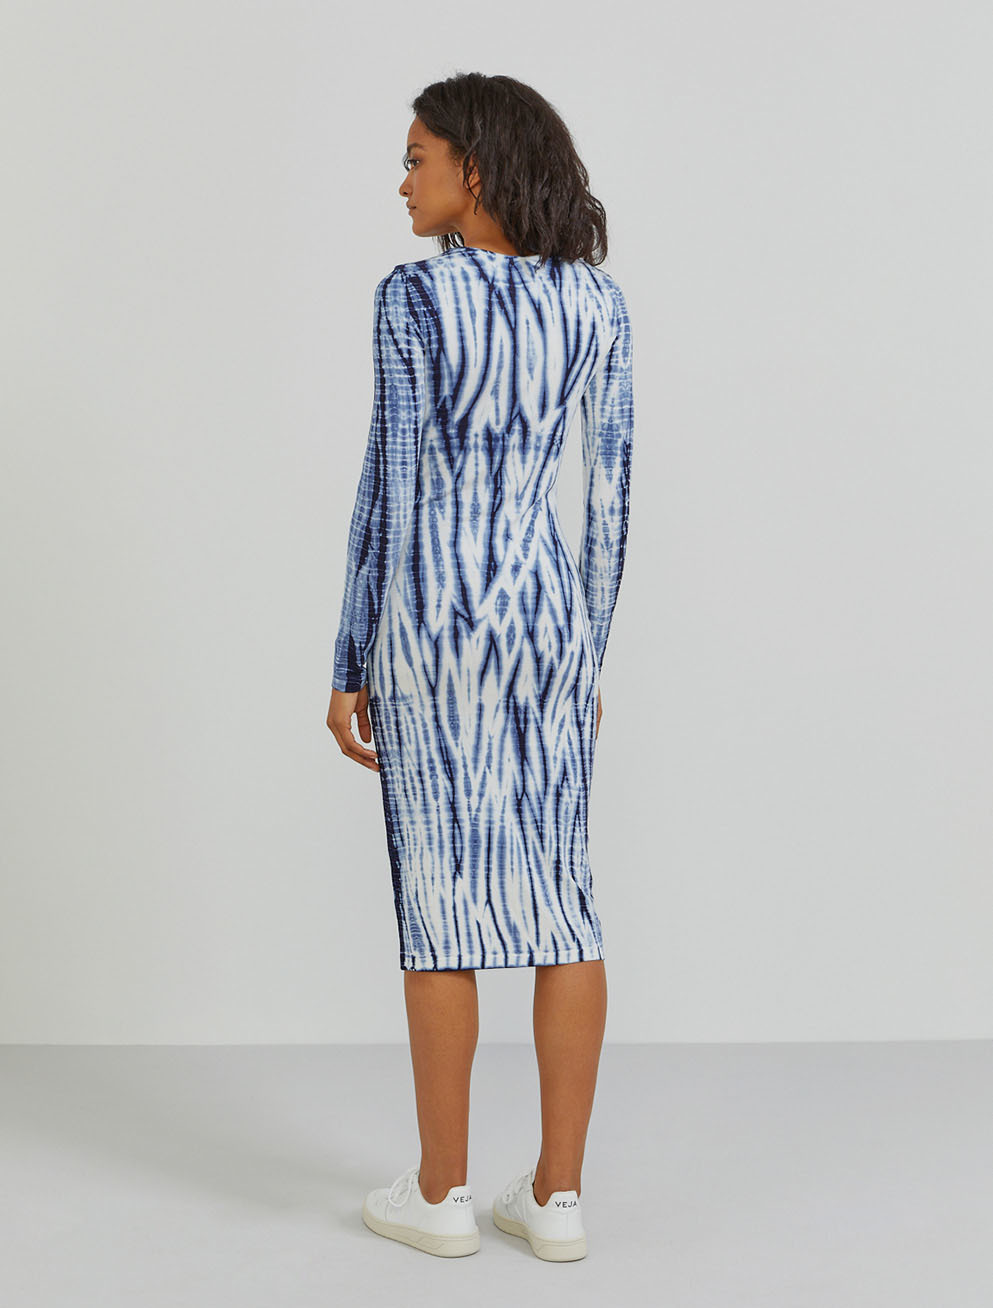 Tencel tie-dye long-sleeve dress